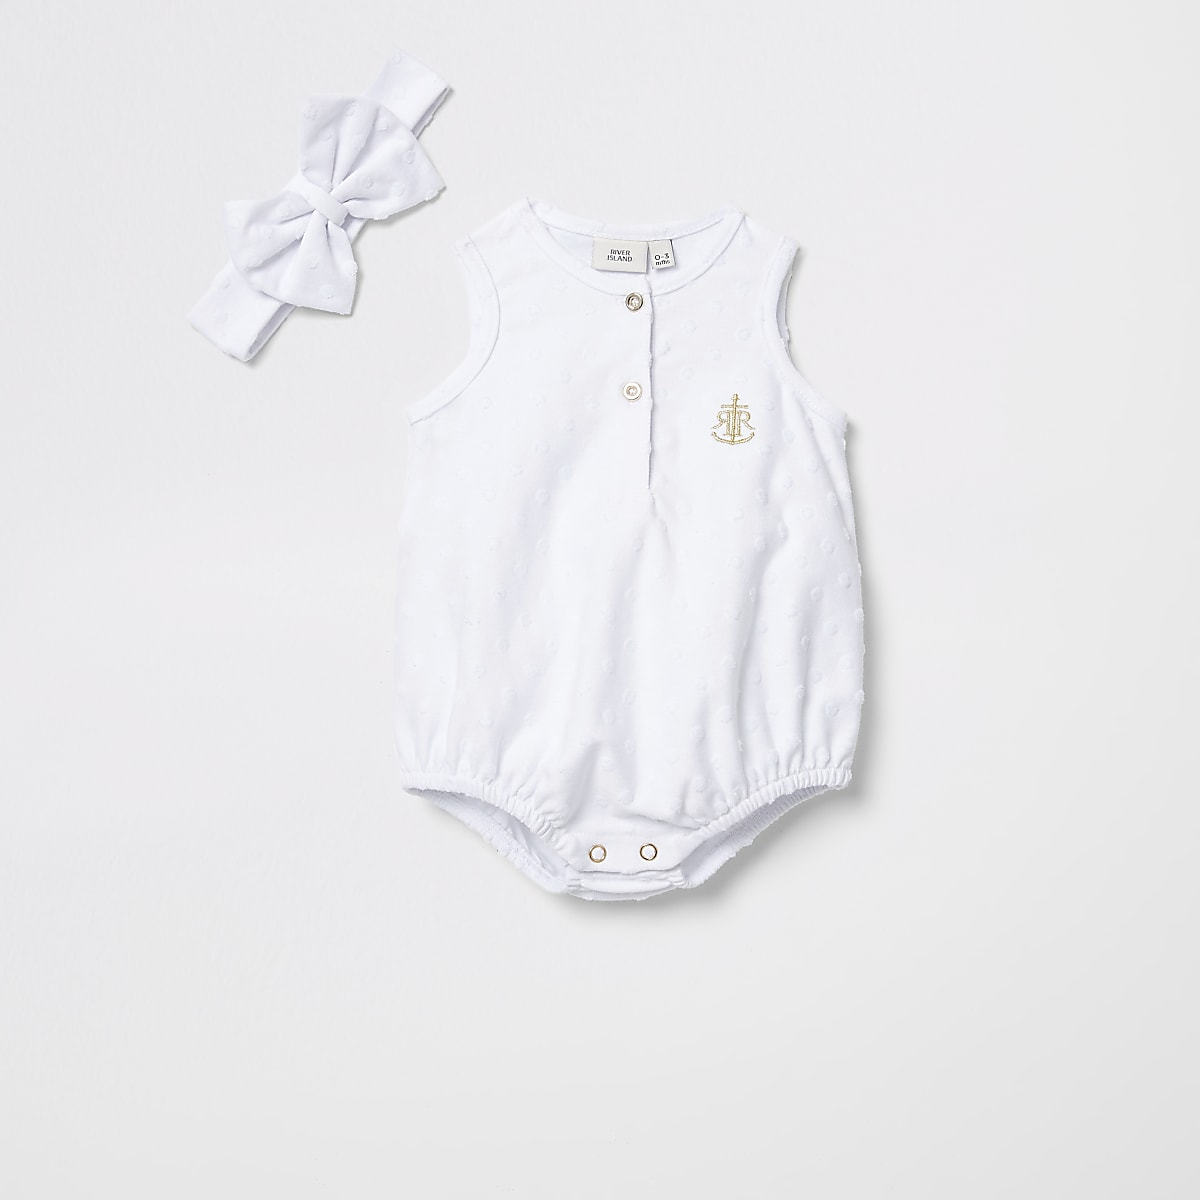 Baby white textured romper with headband